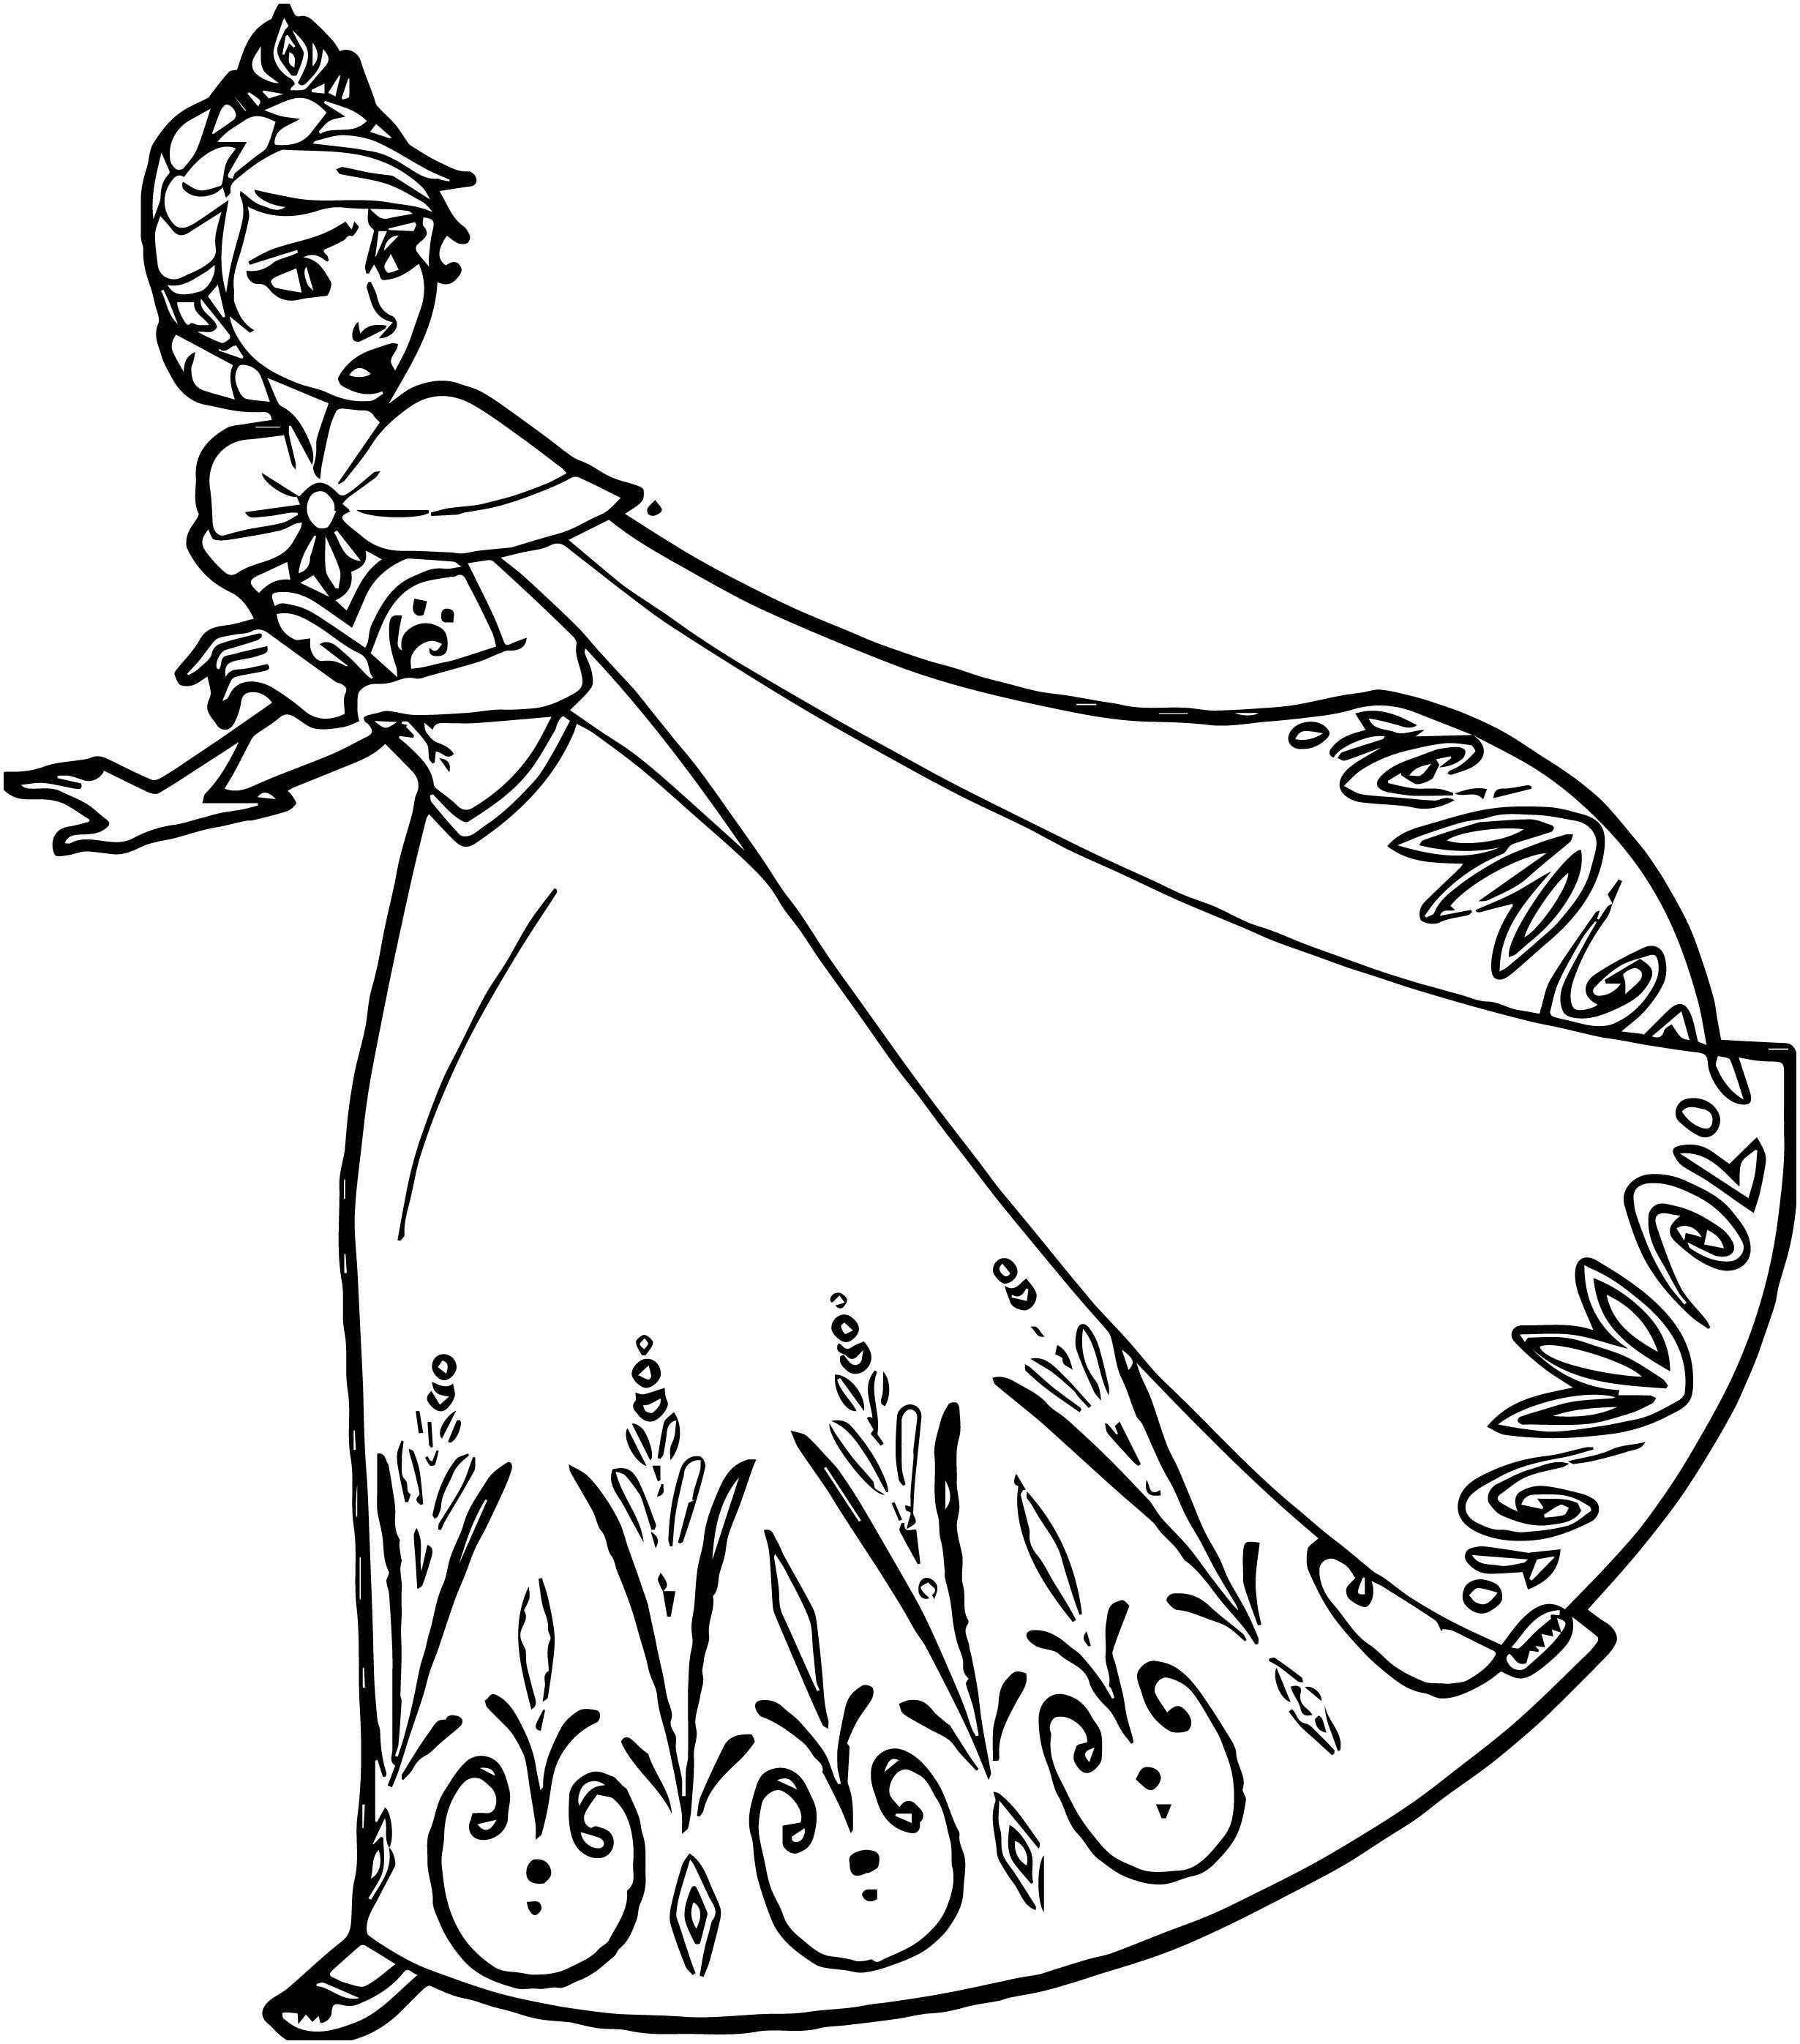 Free Frozen Coloring Pages Luxury Elsa Coloring Pages Inspirational Frozen Coloring Printables Unicorn Coloring Pages Elsa Coloring Pages Animal Coloring Pages